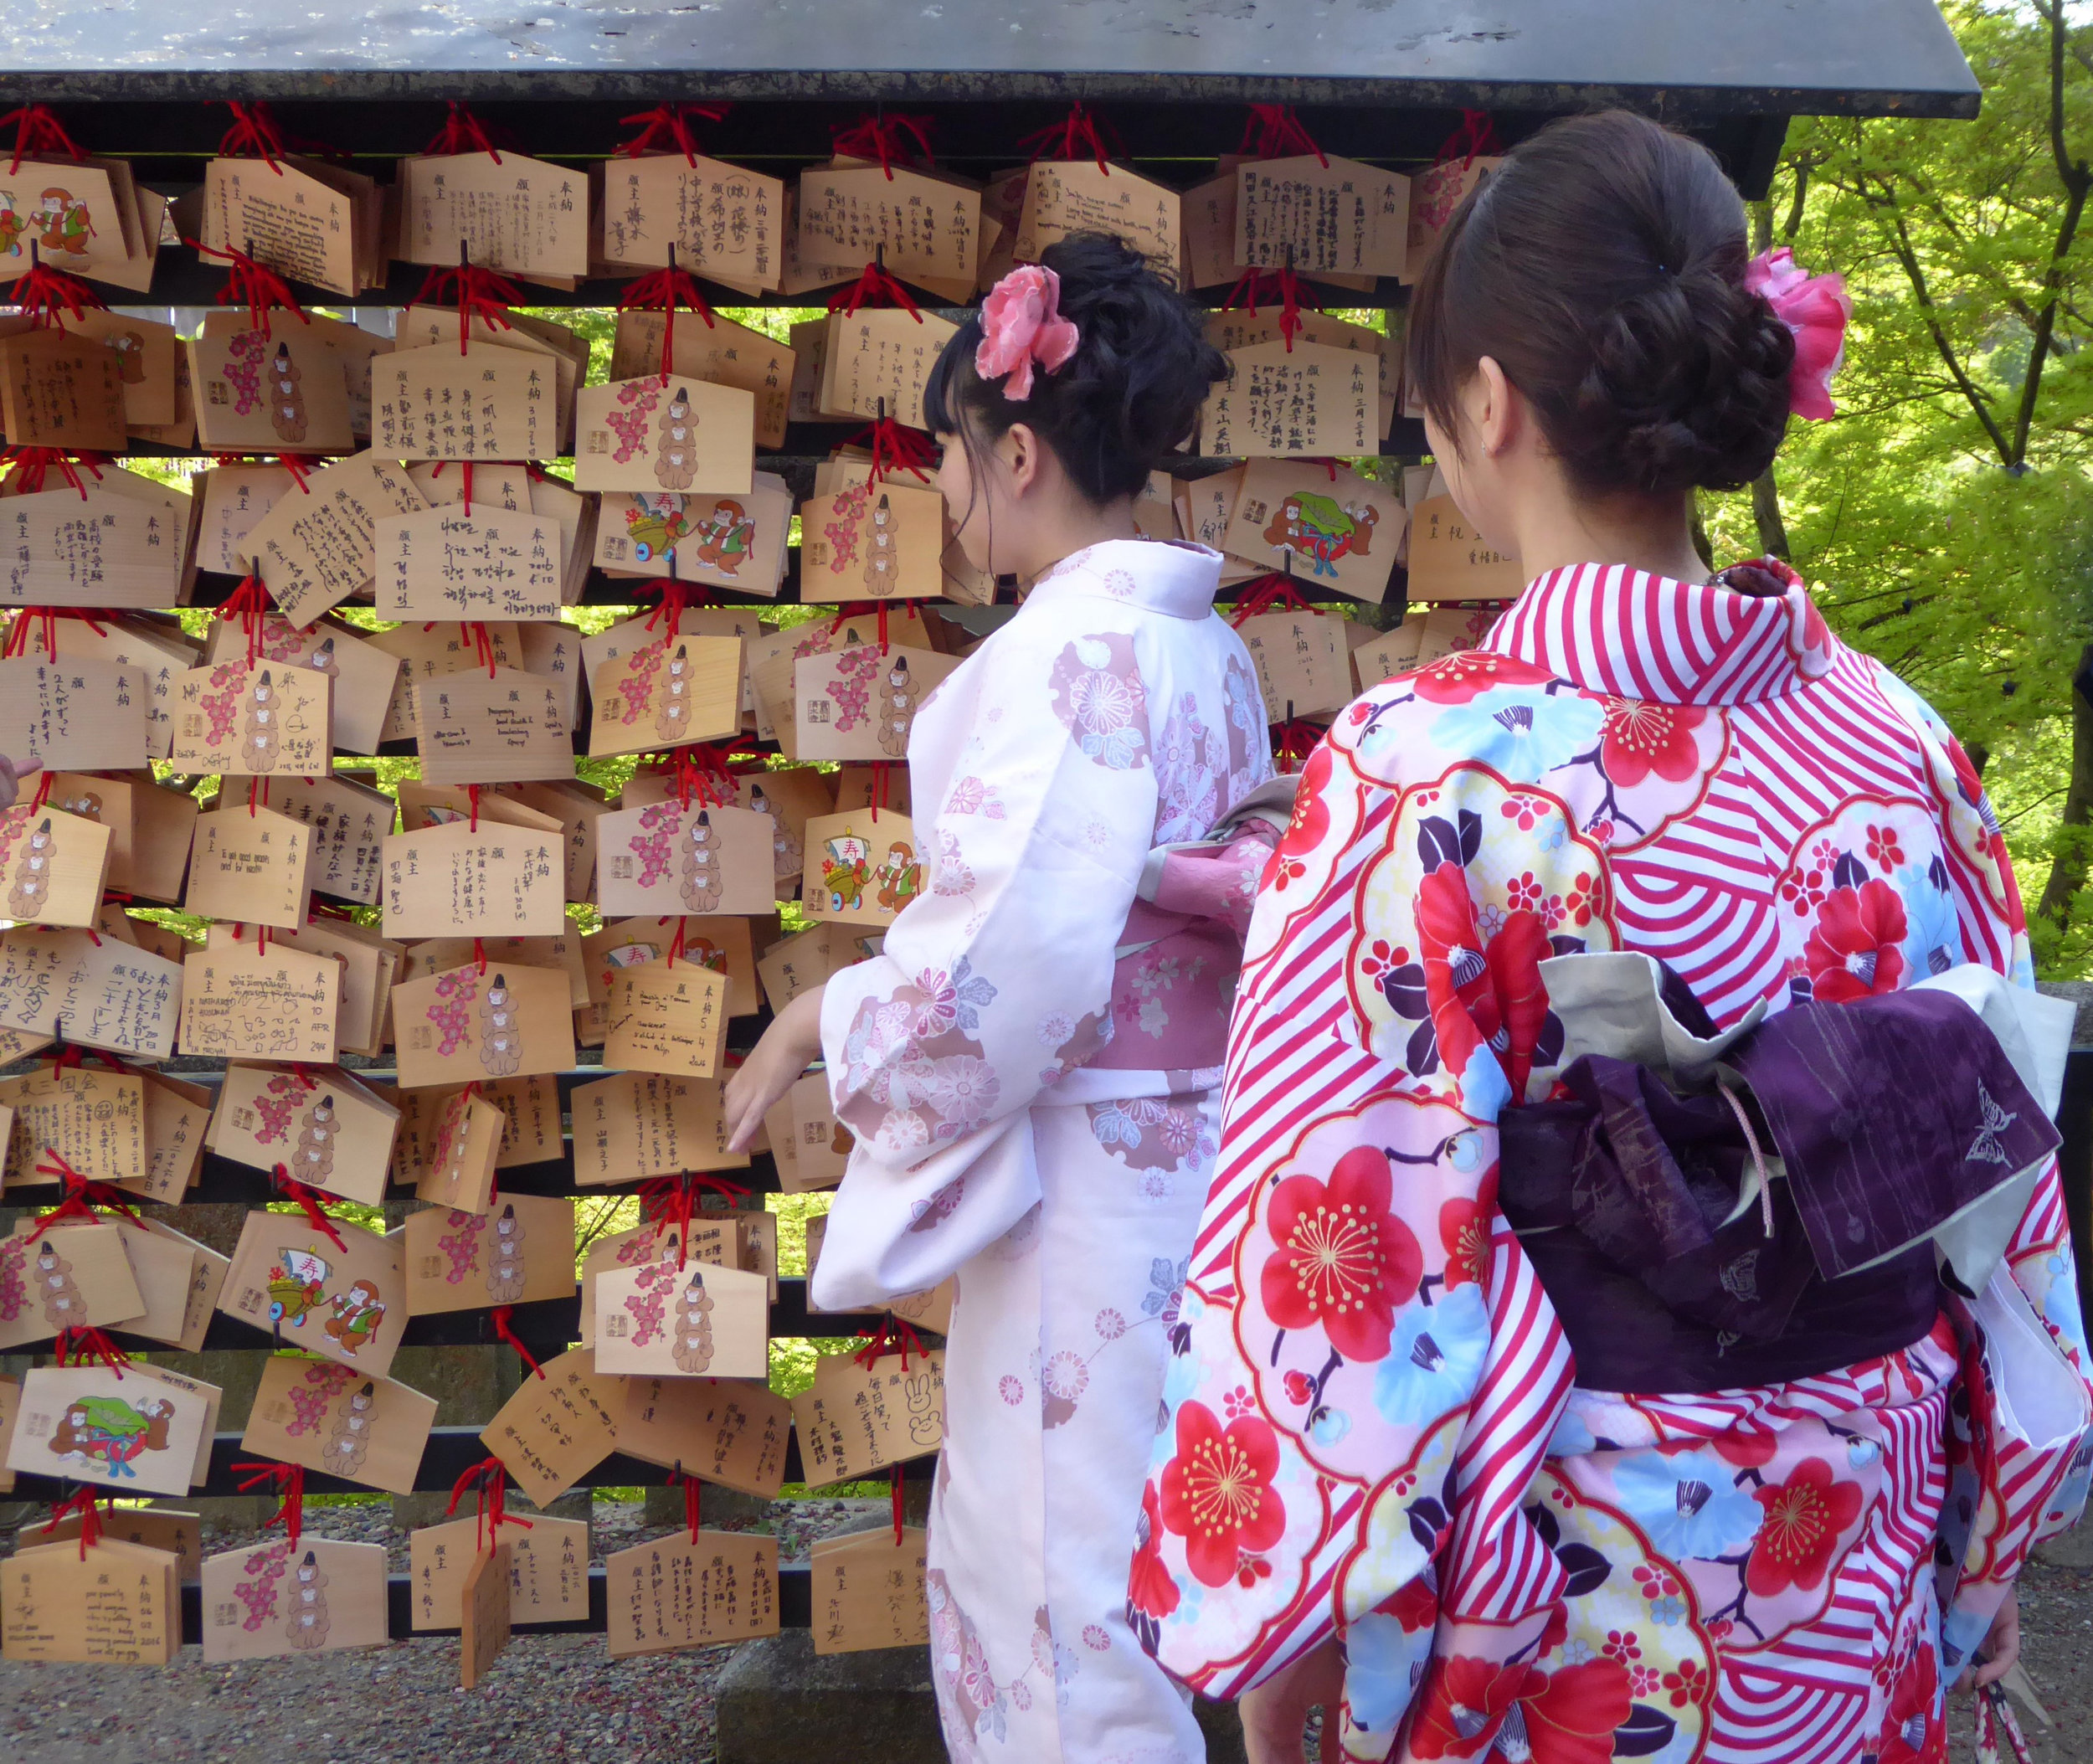 In Kyoto, traditional dress is much more common than in Tokyo. Visitors even rent kimonos for the day so they can visit shrines in traditional garb.